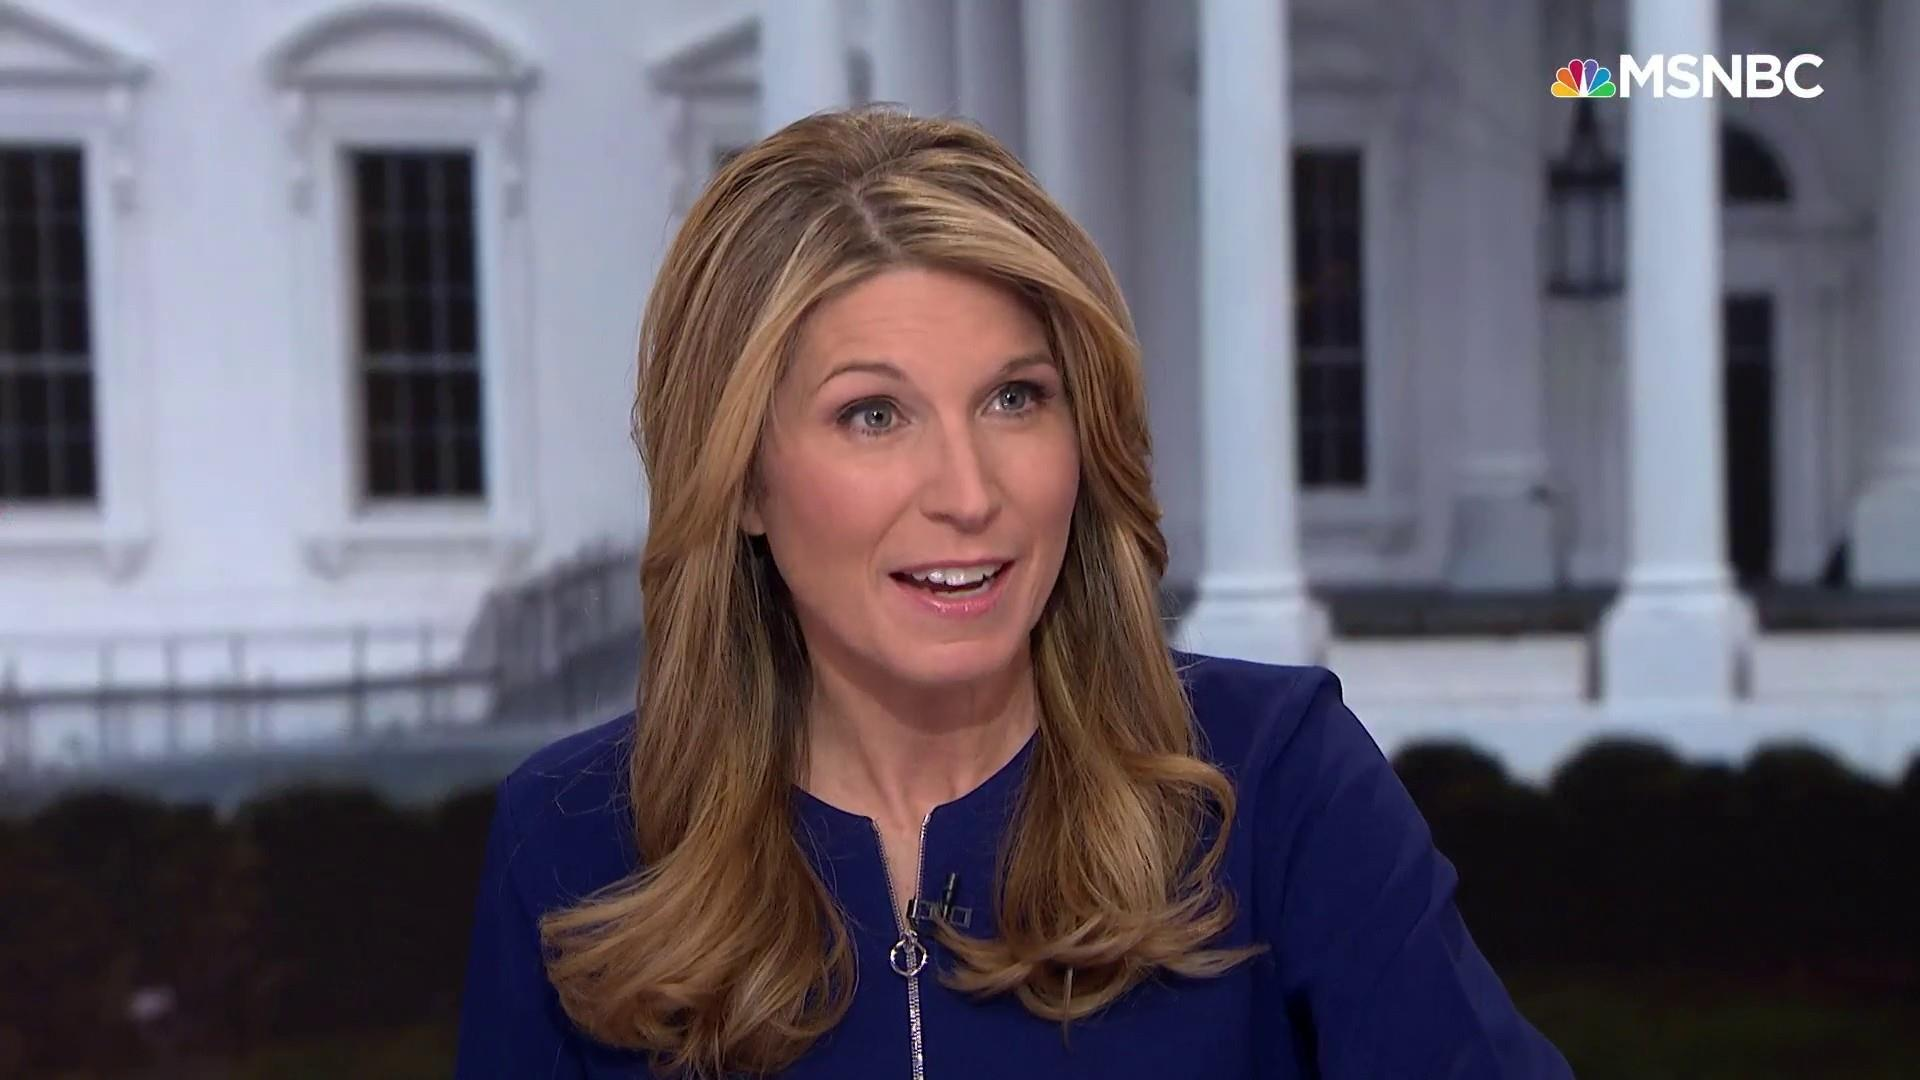 Nicolle Wallace astonished after GOP Senator breaks from Trump 'zombies,' criticizes Iran briefing